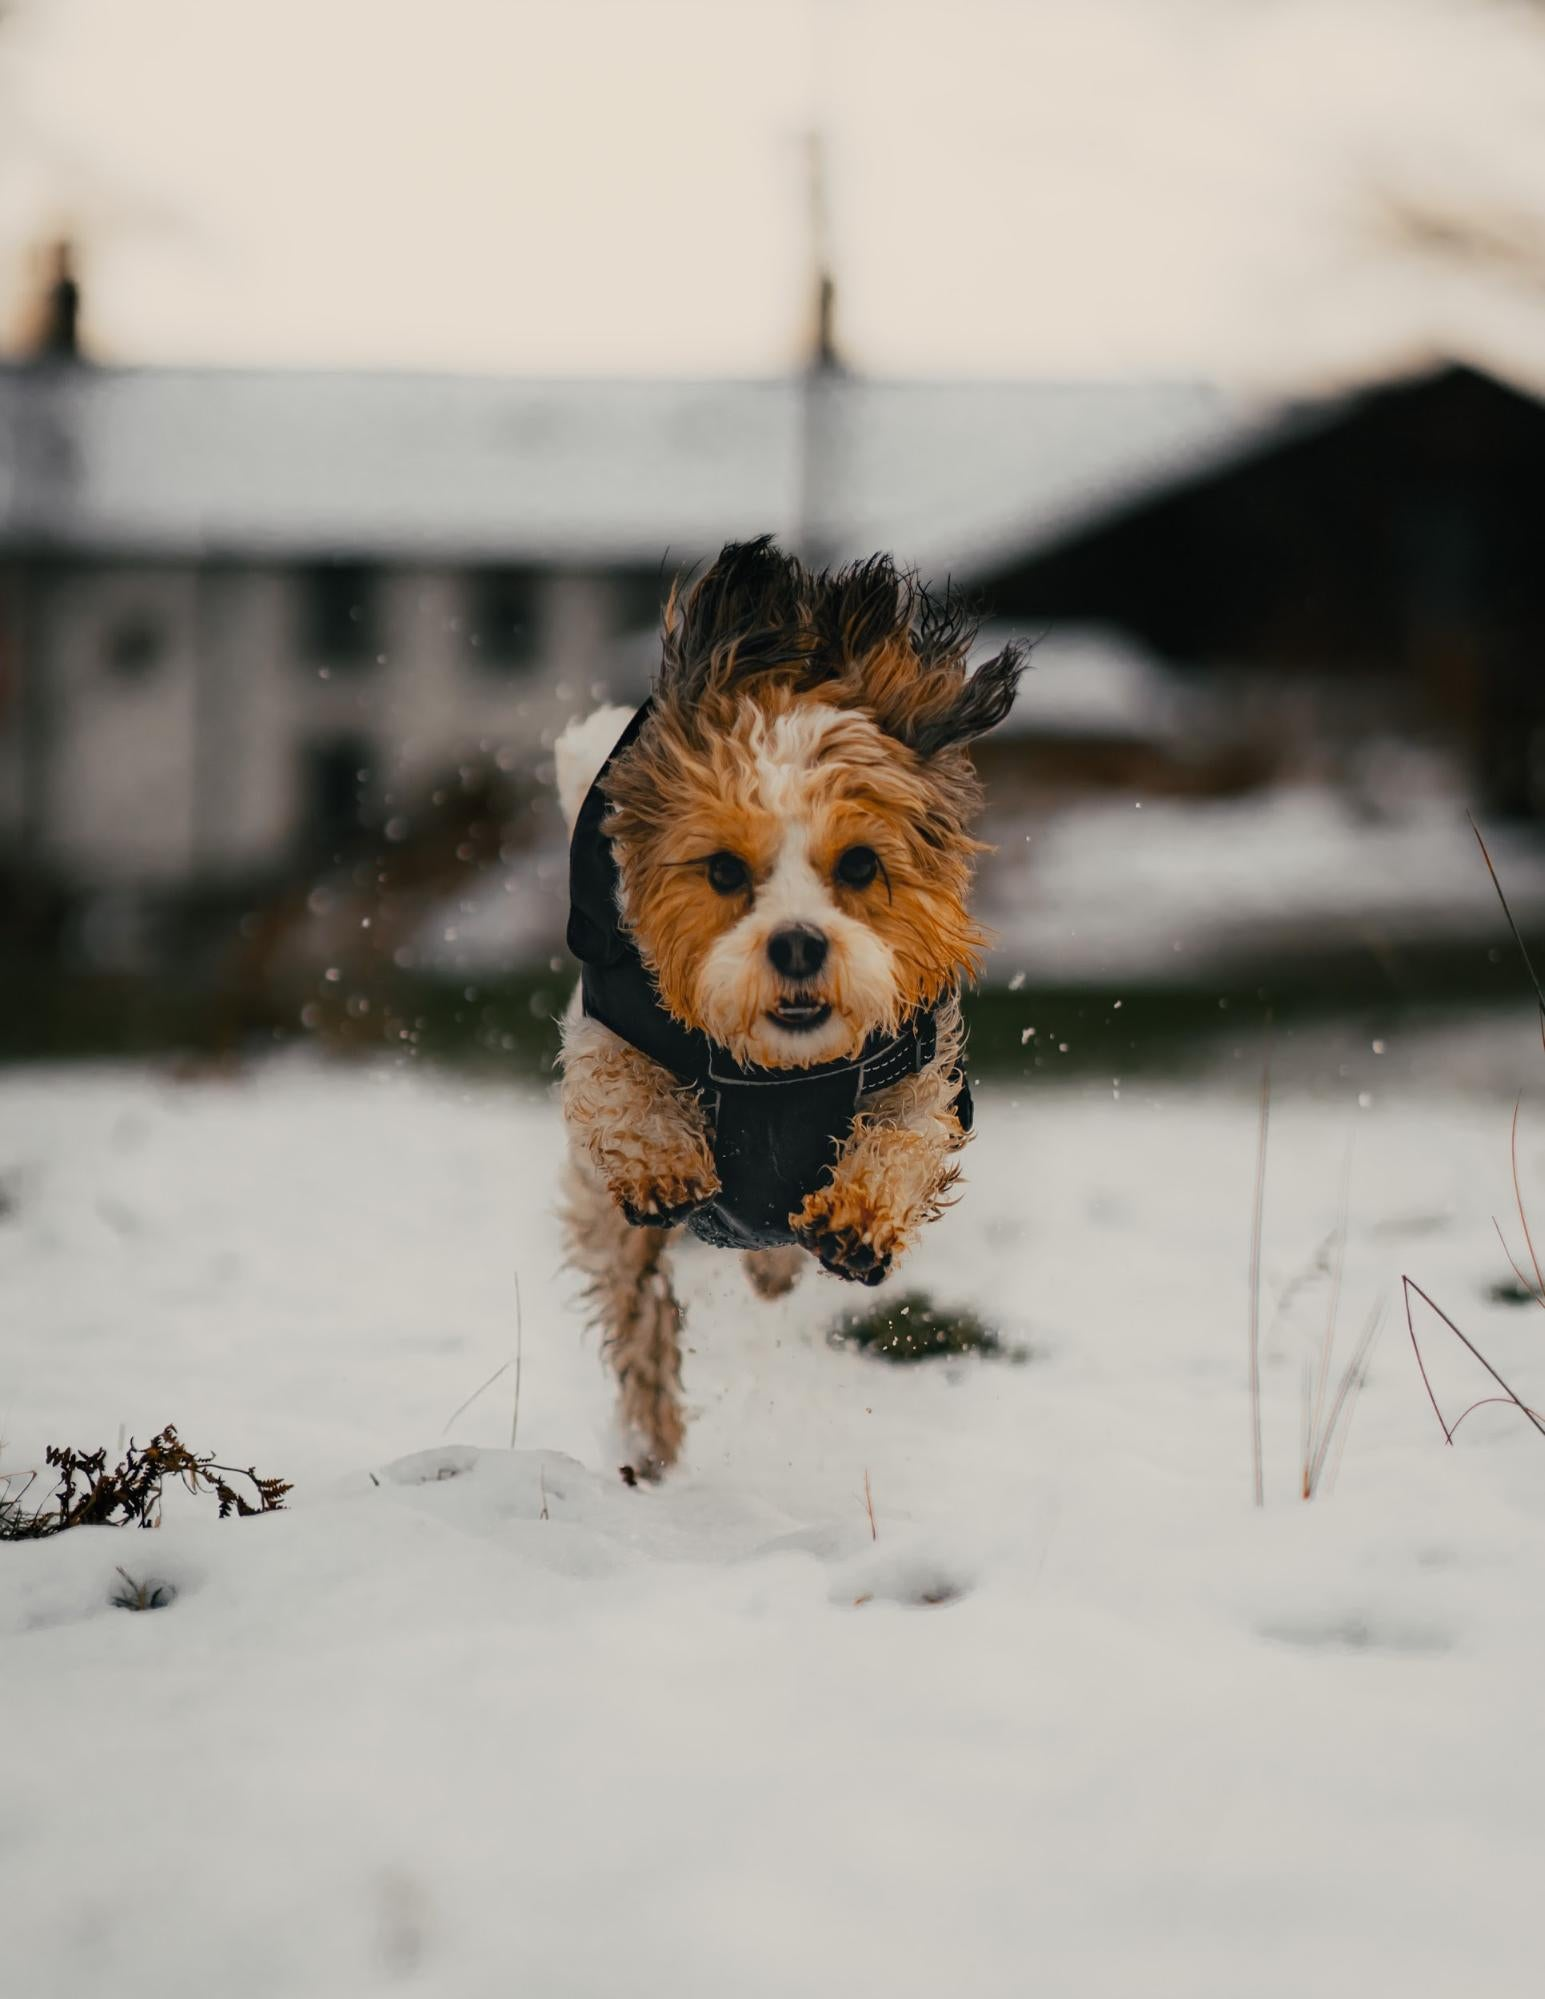 Small dog jumping in the snow.